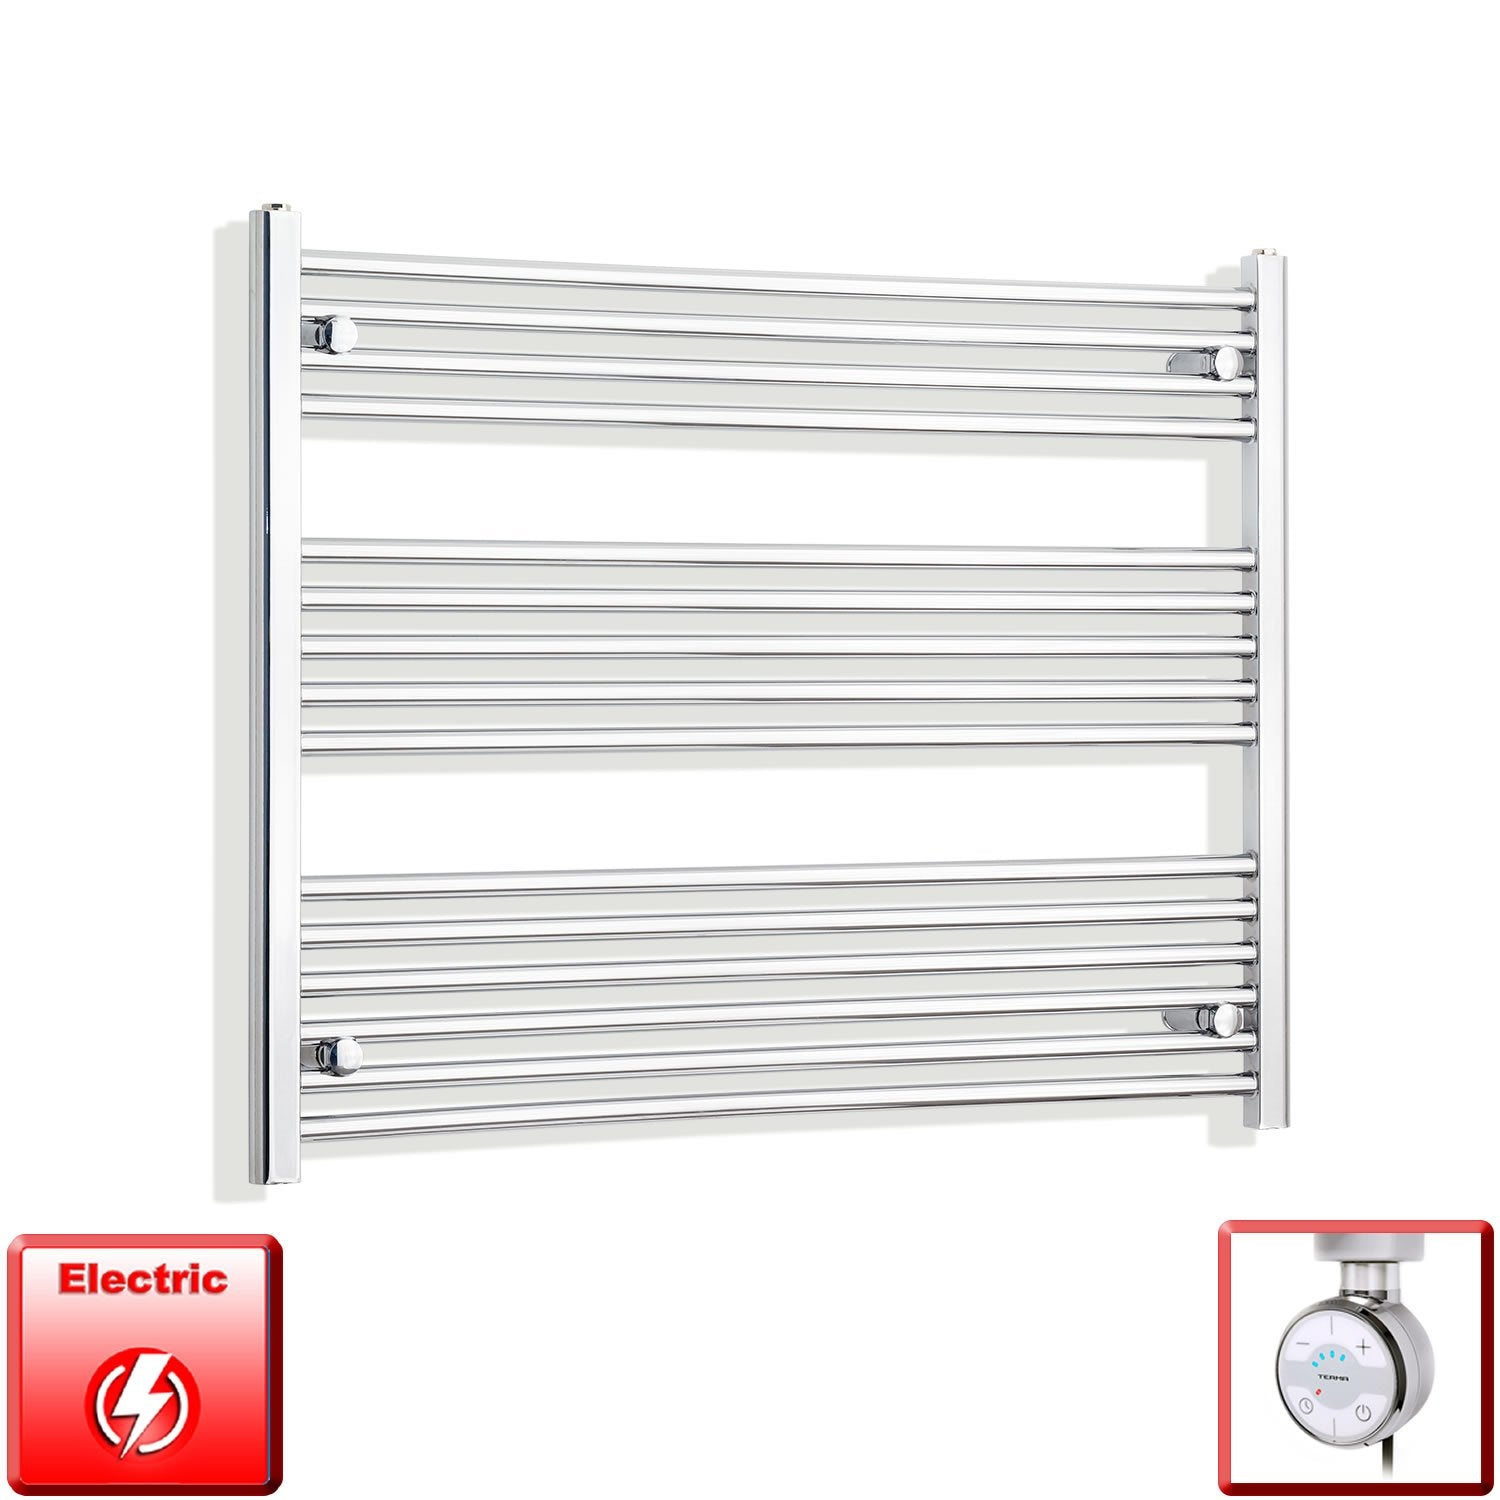 1000mm Wide 800mm High Flat Chrome Pre-Filled Electric Heated Towel Rail Radiator HTR,MOA Thermostatic Element